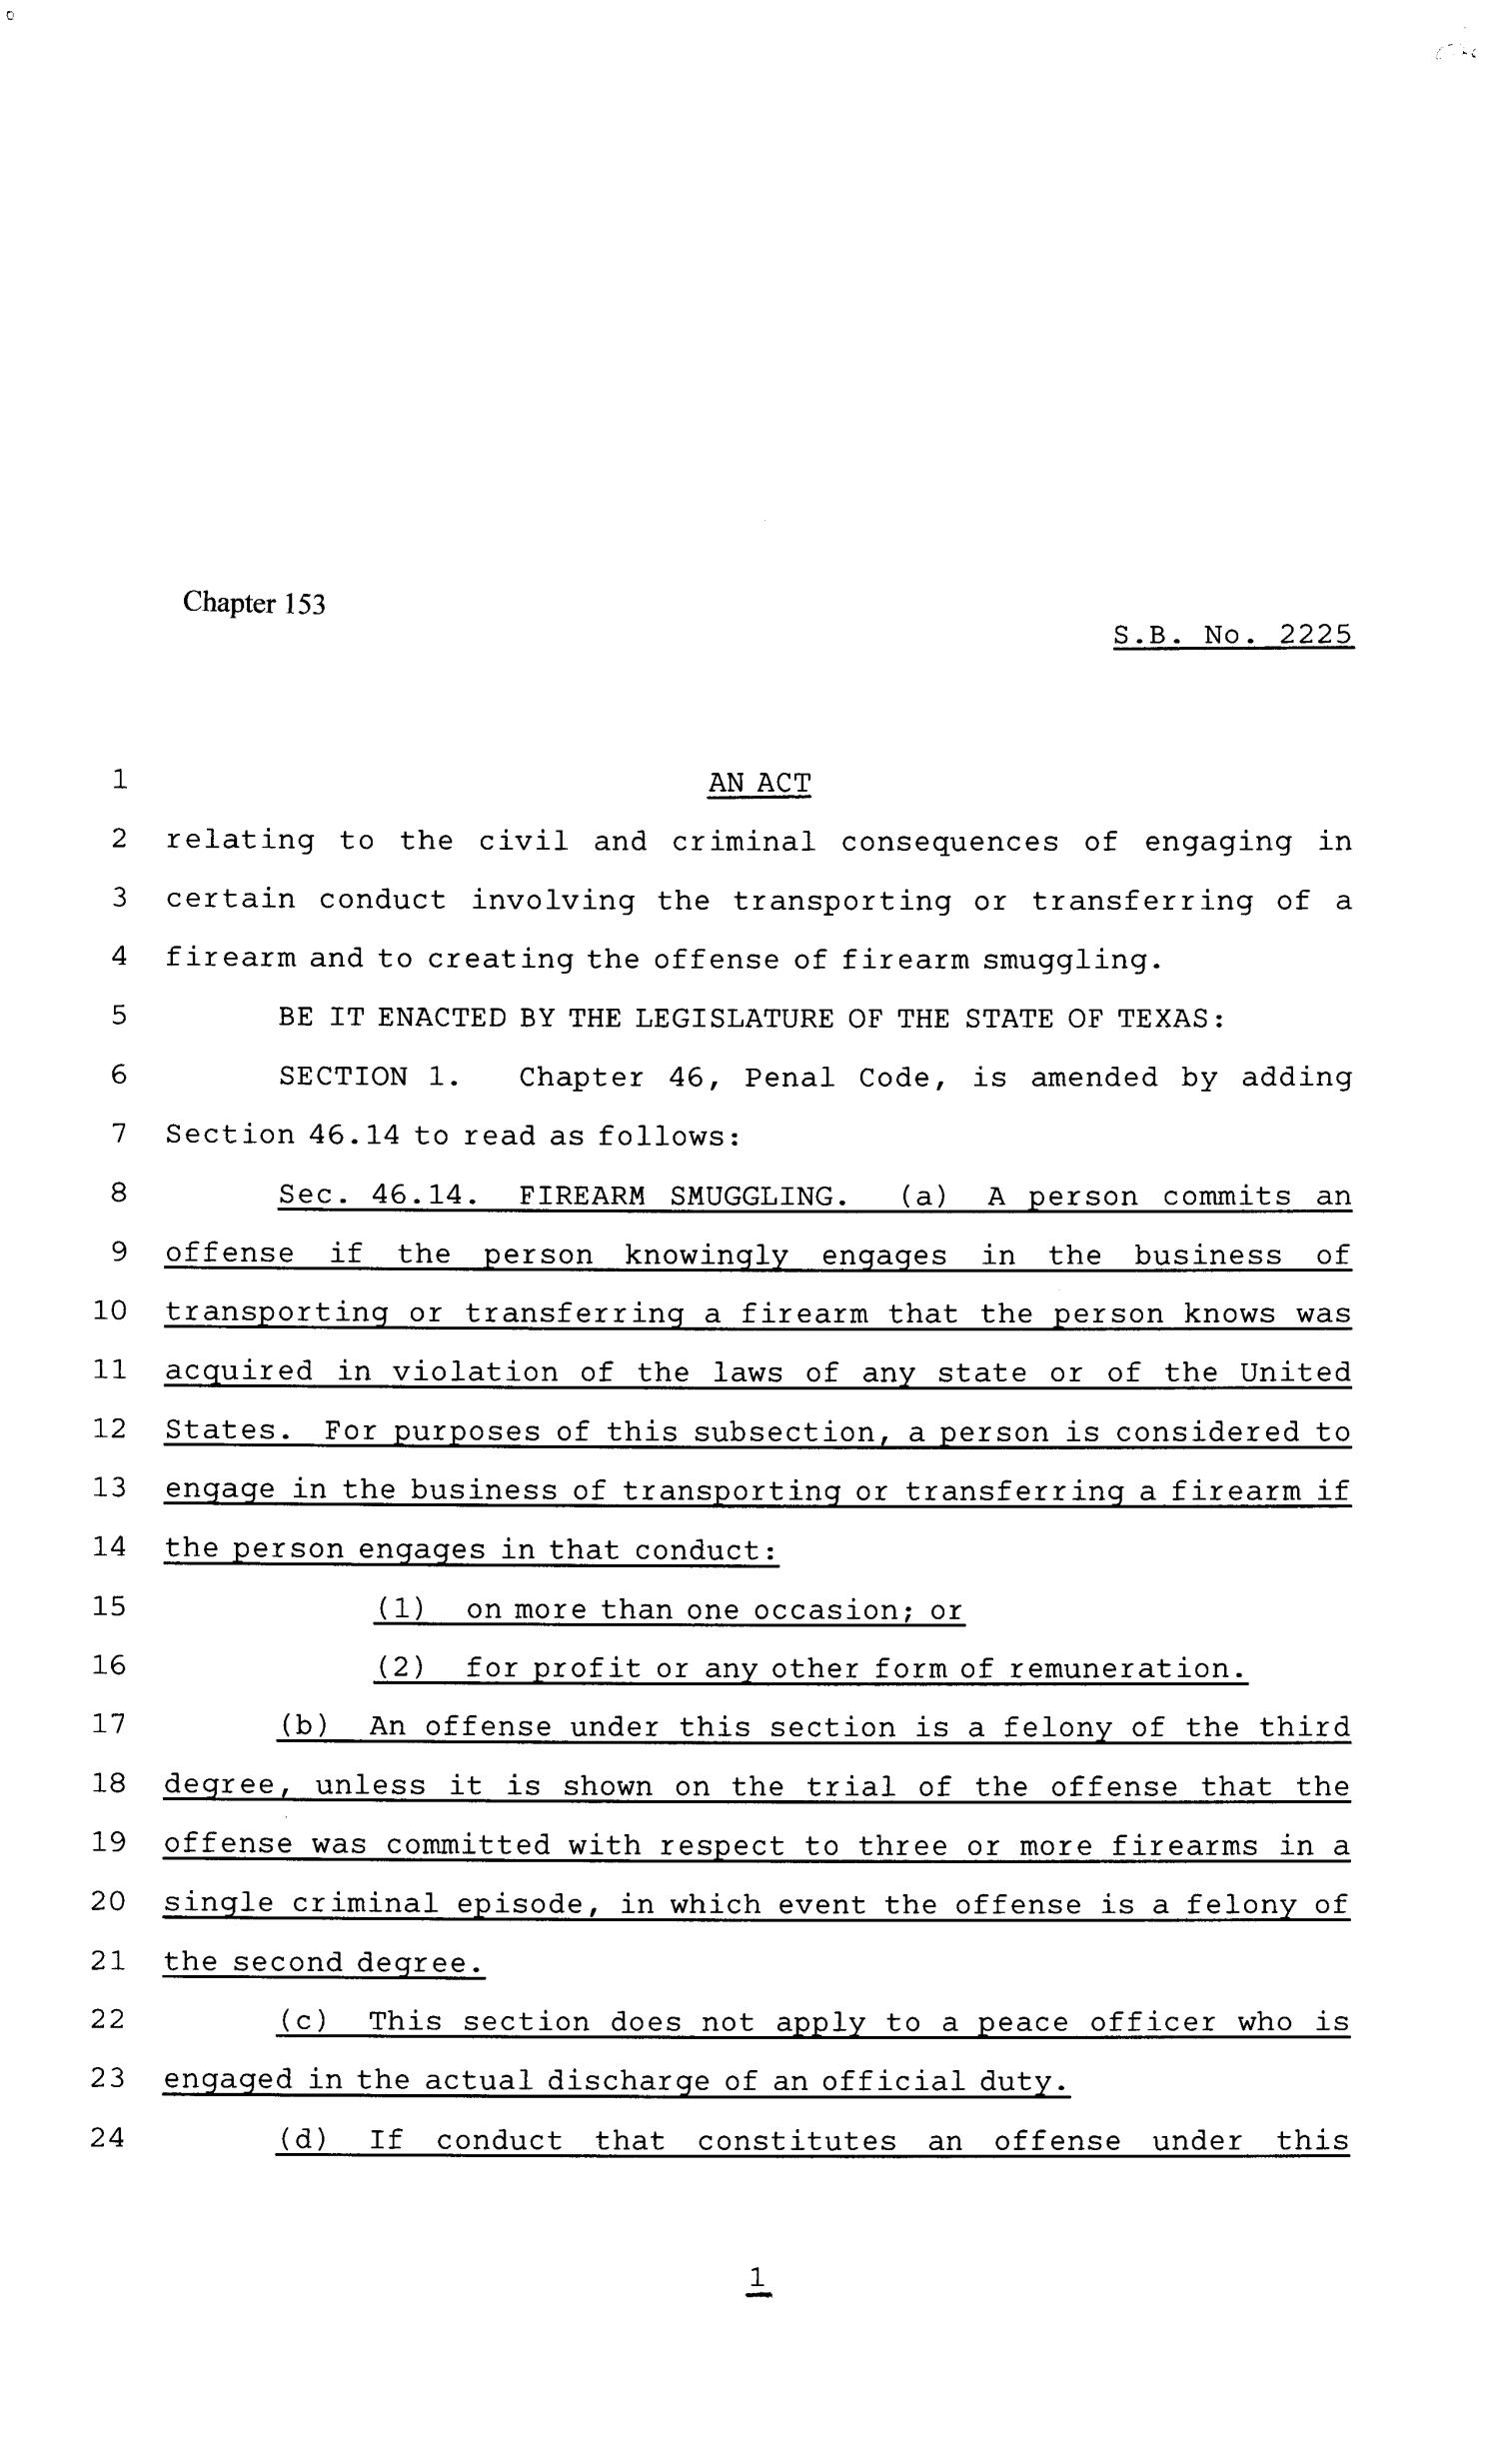 81st Texas Legislature, Senate Bill 2225, Chapter 153                                                                                                      [Sequence #]: 1 of 7